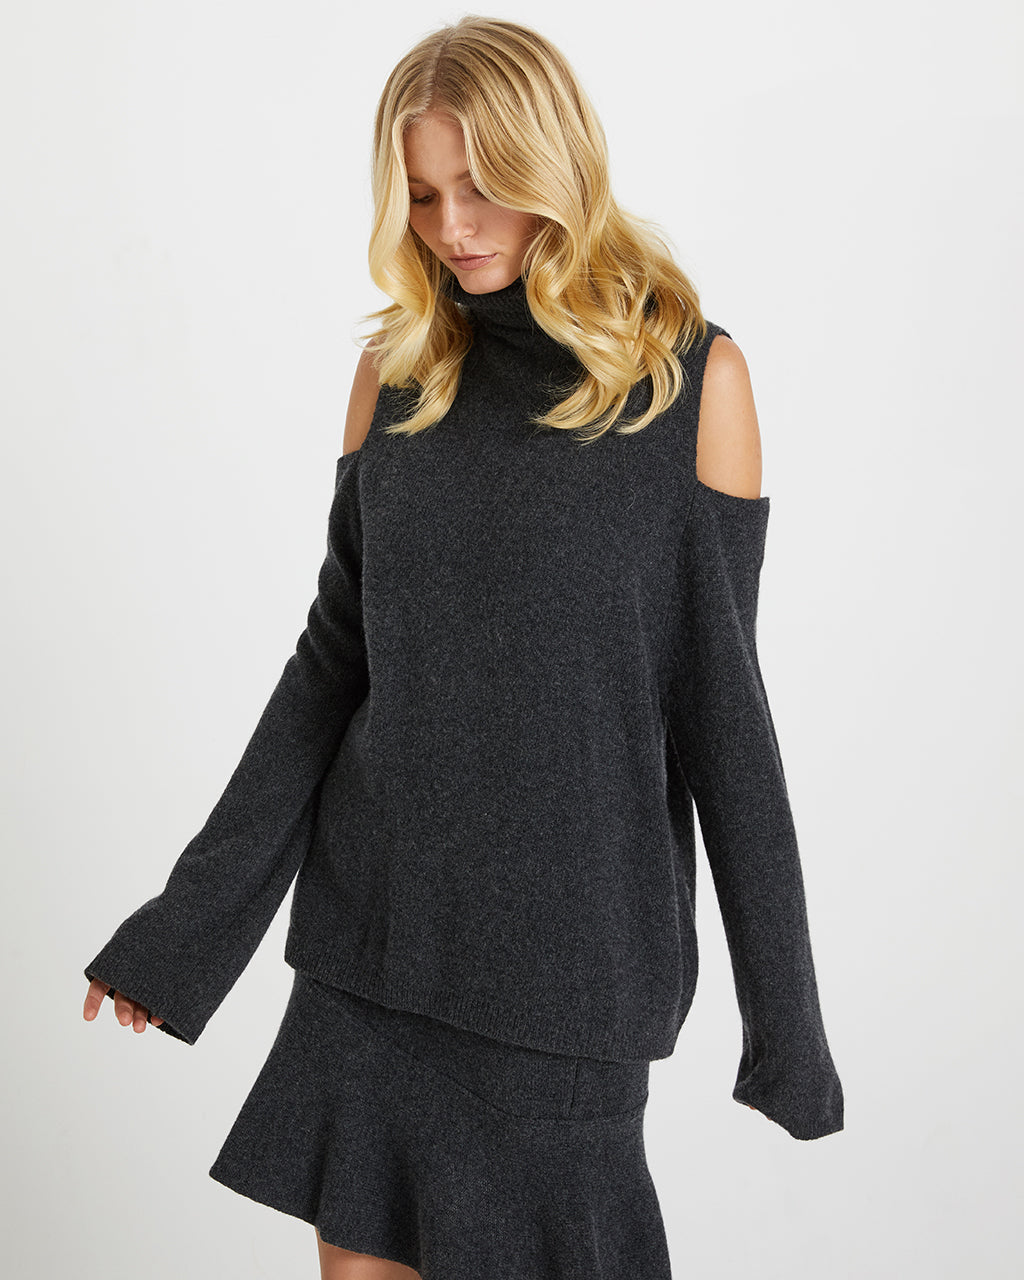 COLD SHOULDER KNIT SET - CHARCOAL